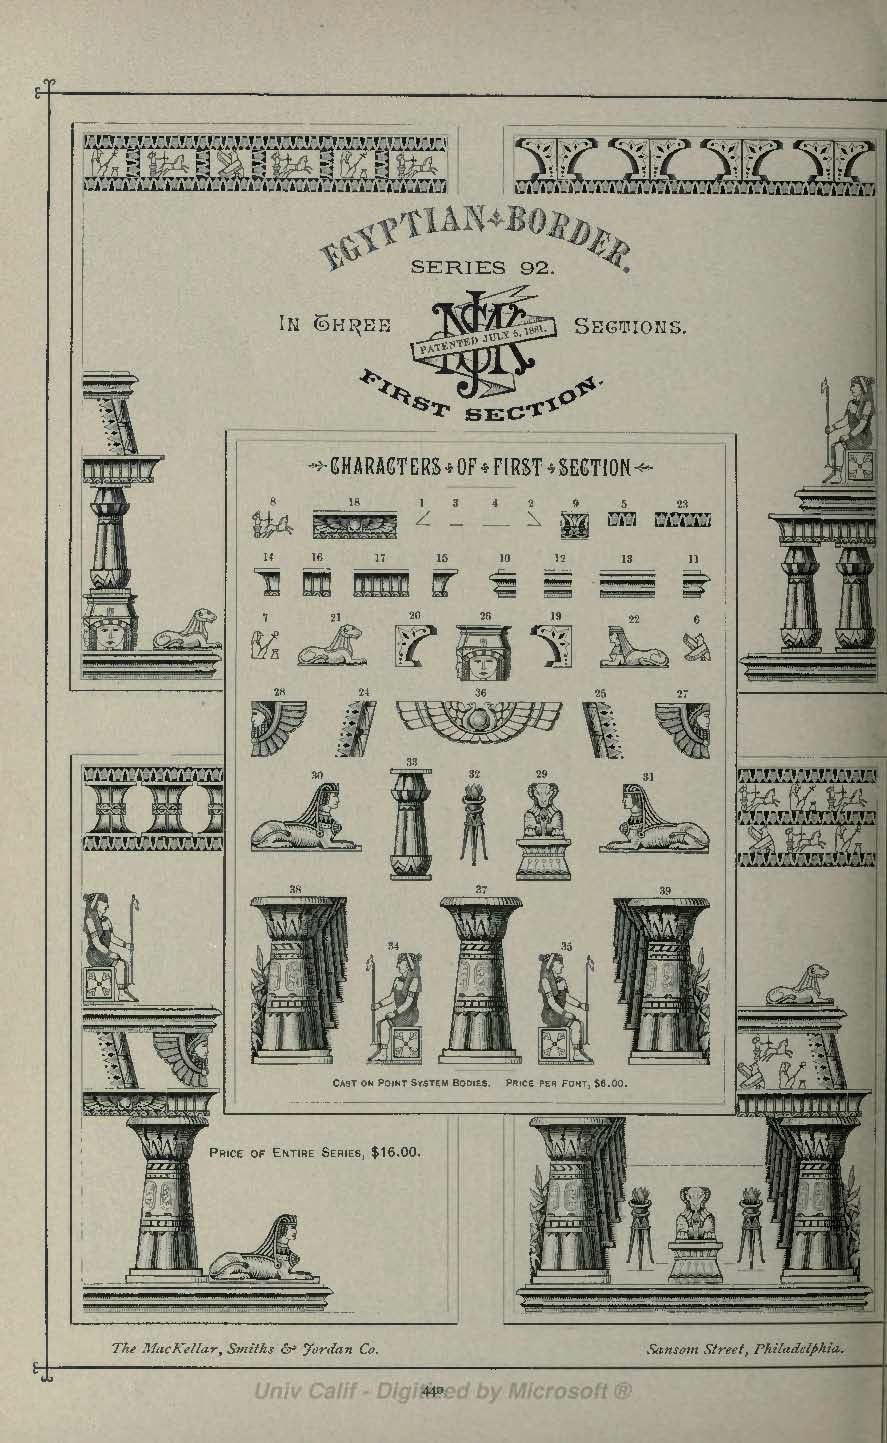 Egyptian Border First Section from MacKellar Smiths and Jordan 1892 type catalog